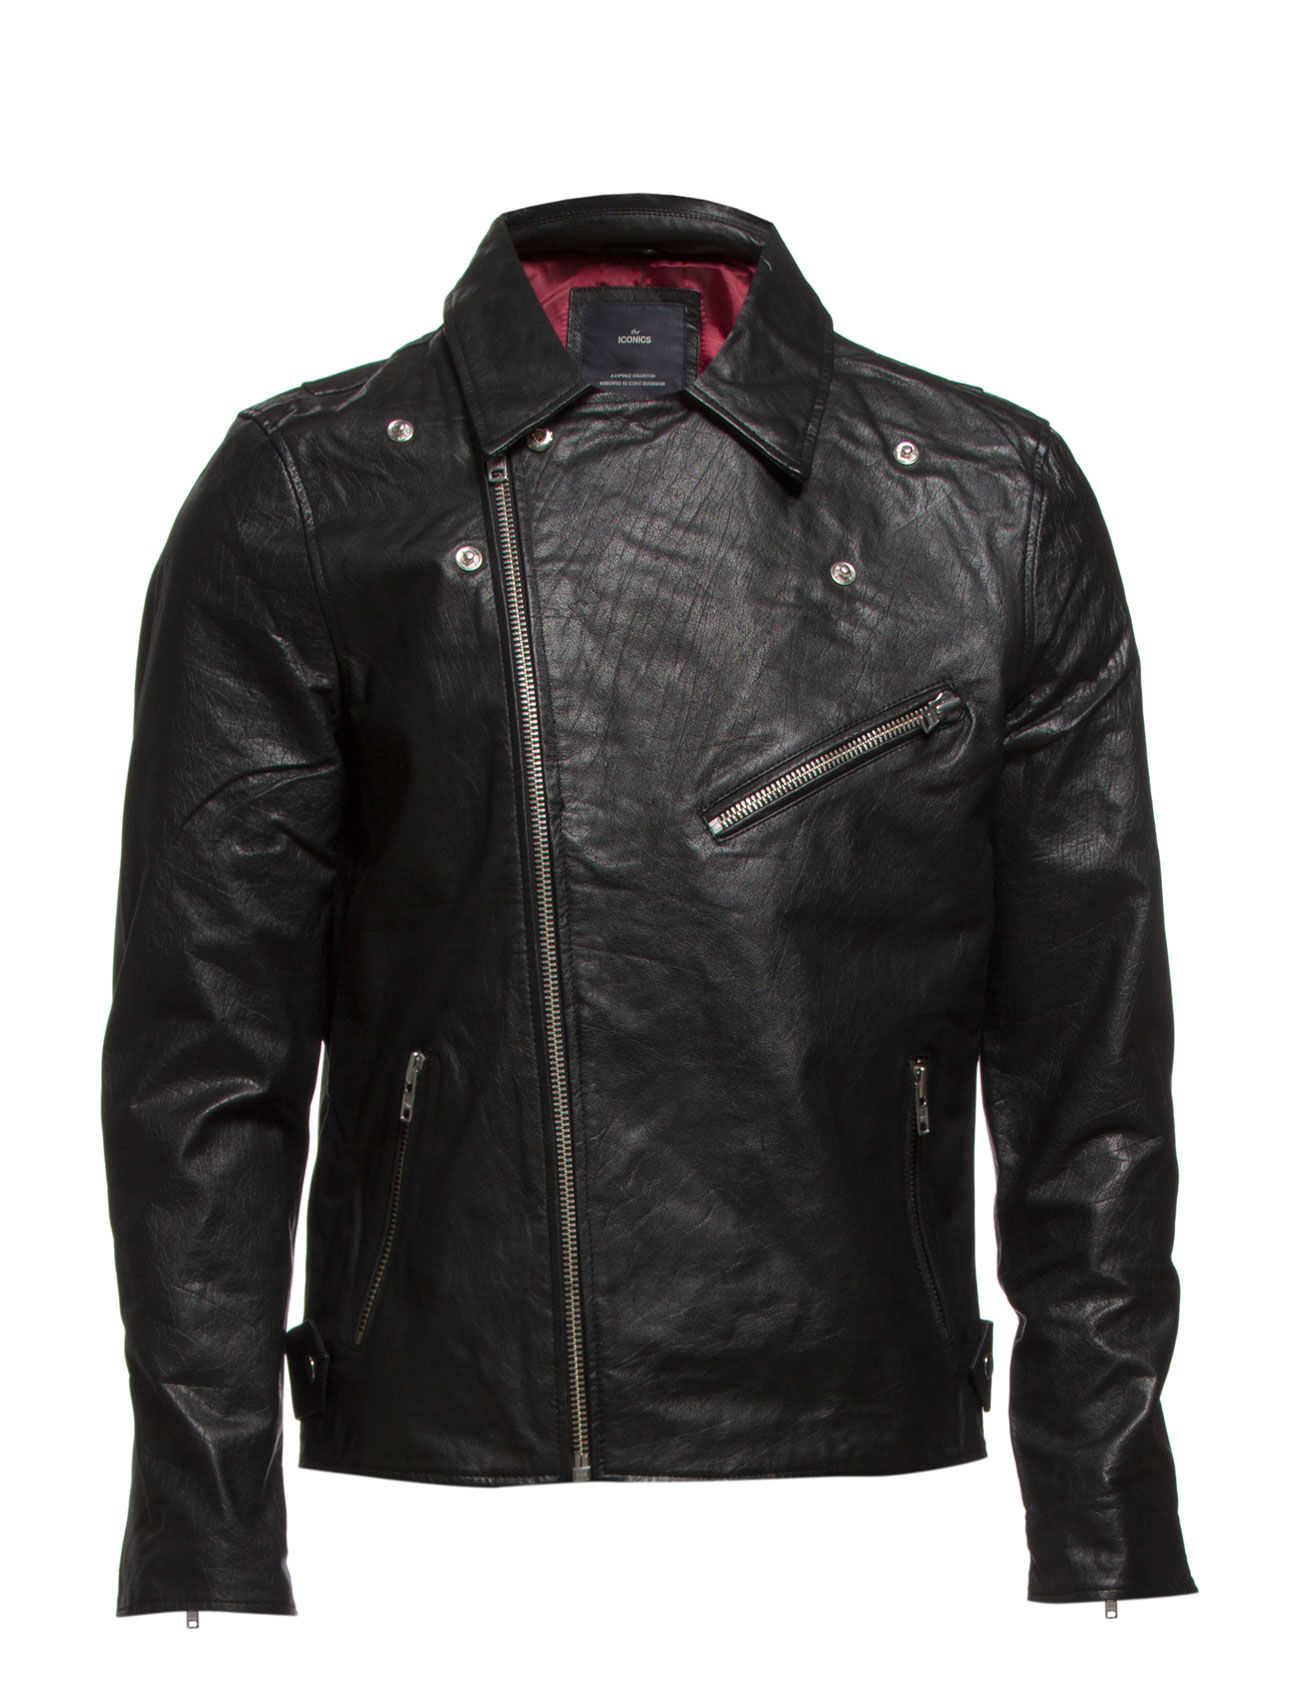 The Iconic Biker Jacket I